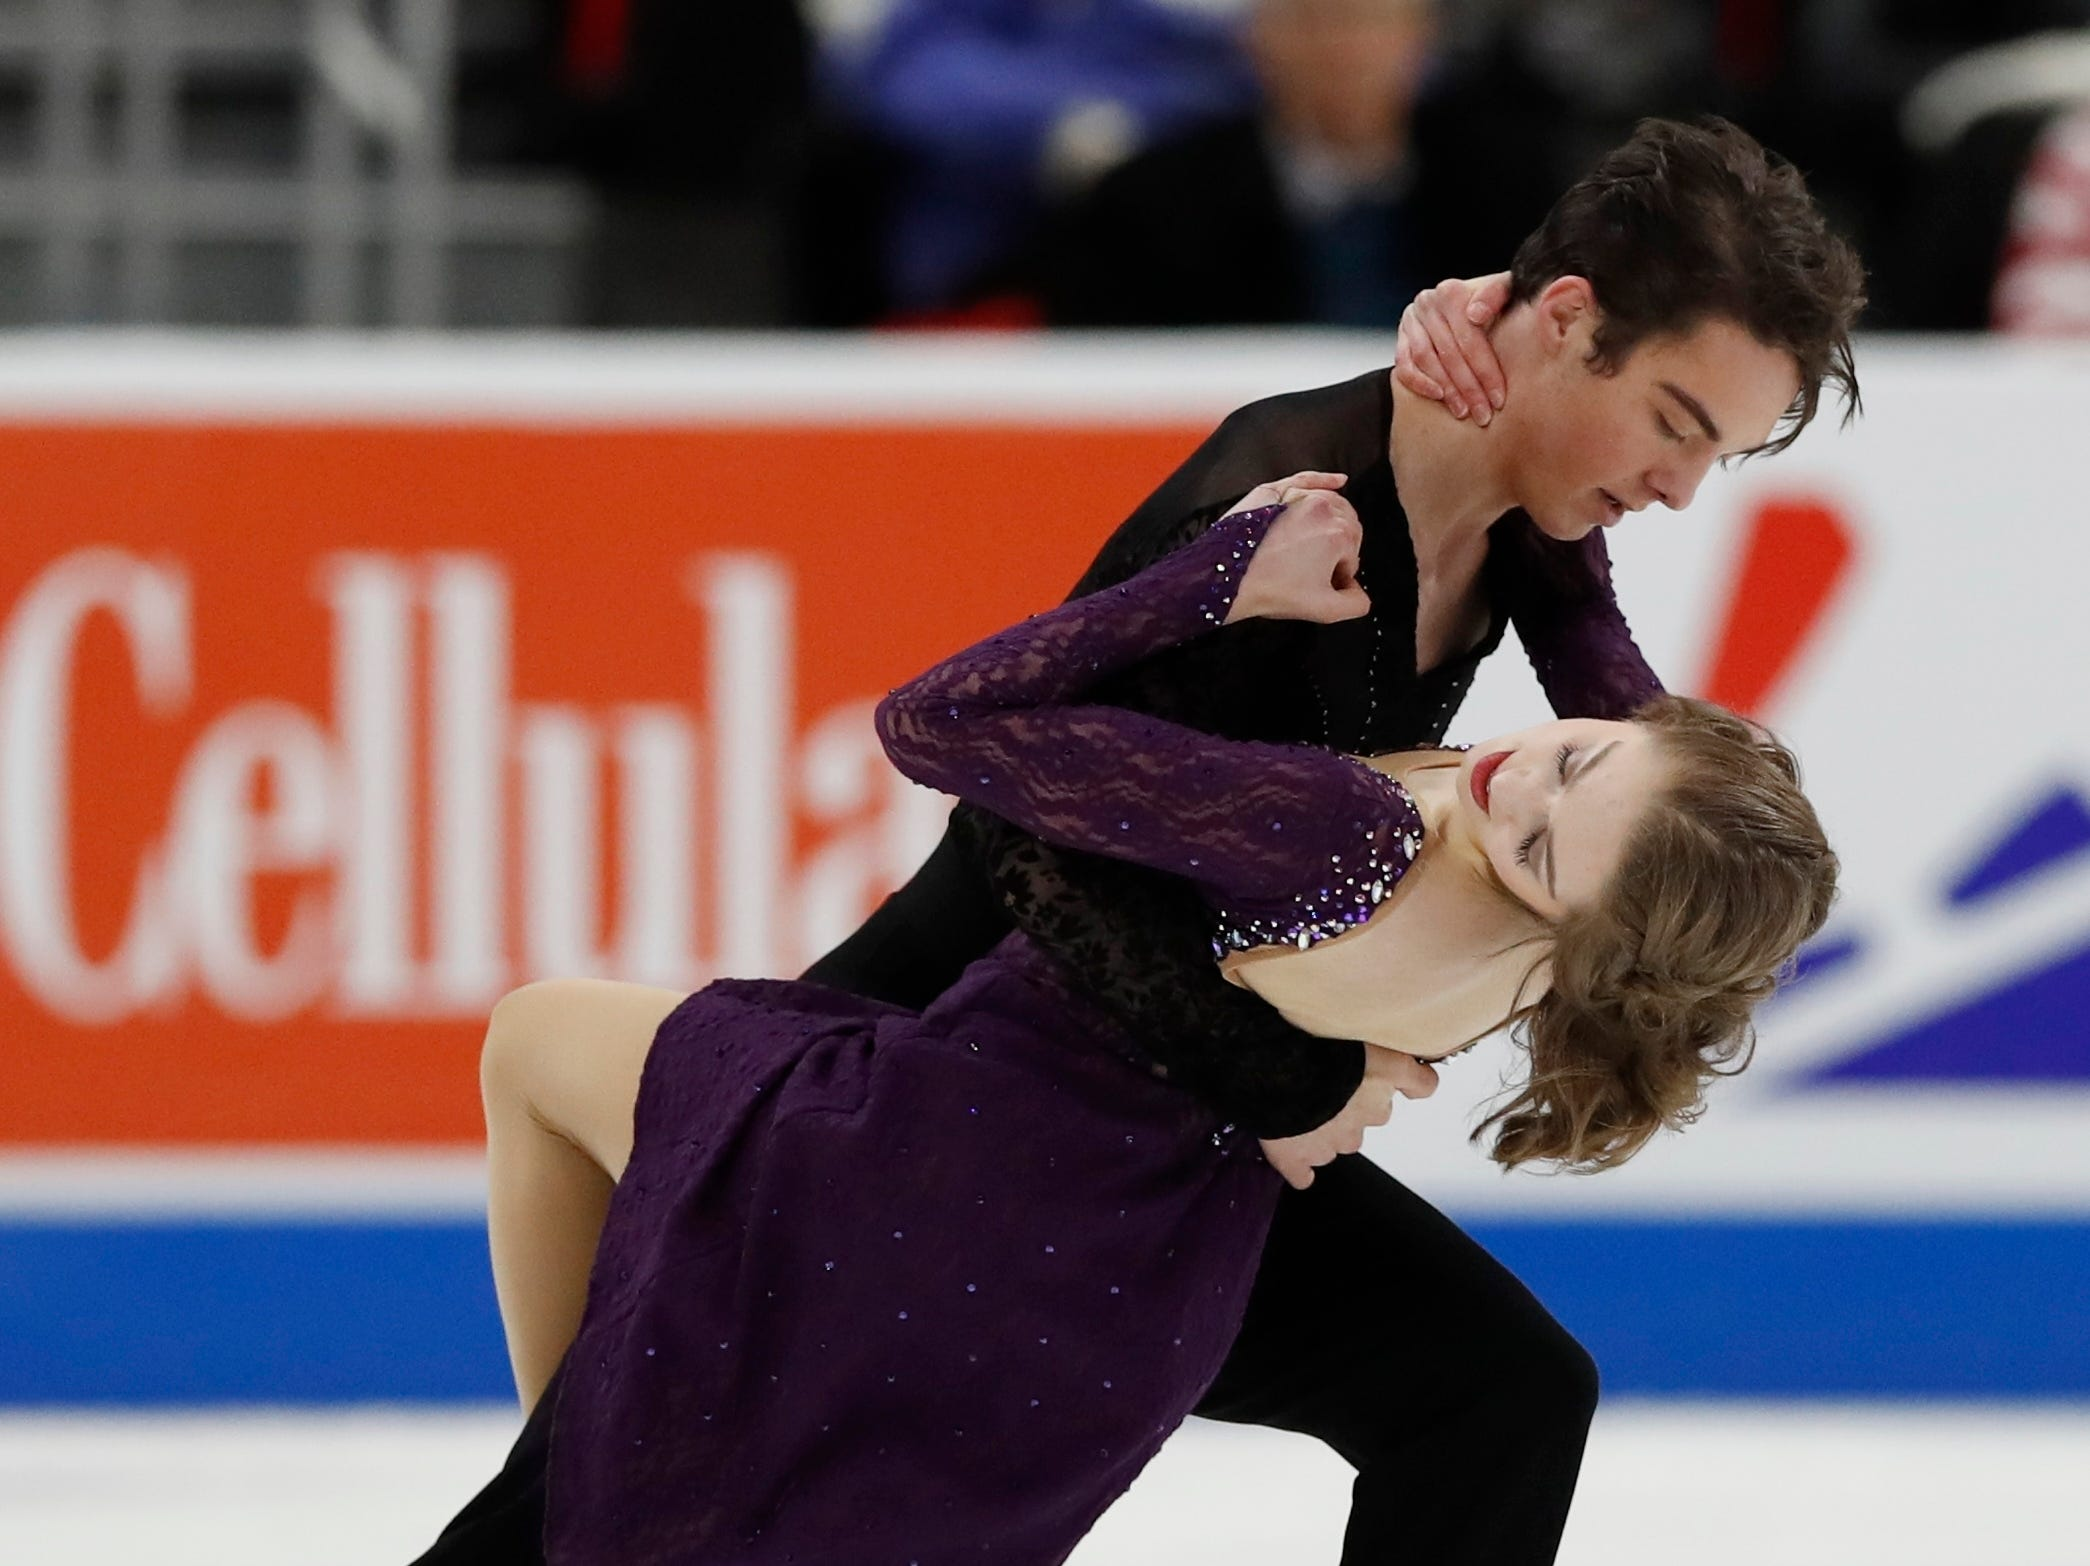 Bailey Melton and Ryan O'Donnell perform in the rhythm dance program during the U.S. Figure Skating Championships.